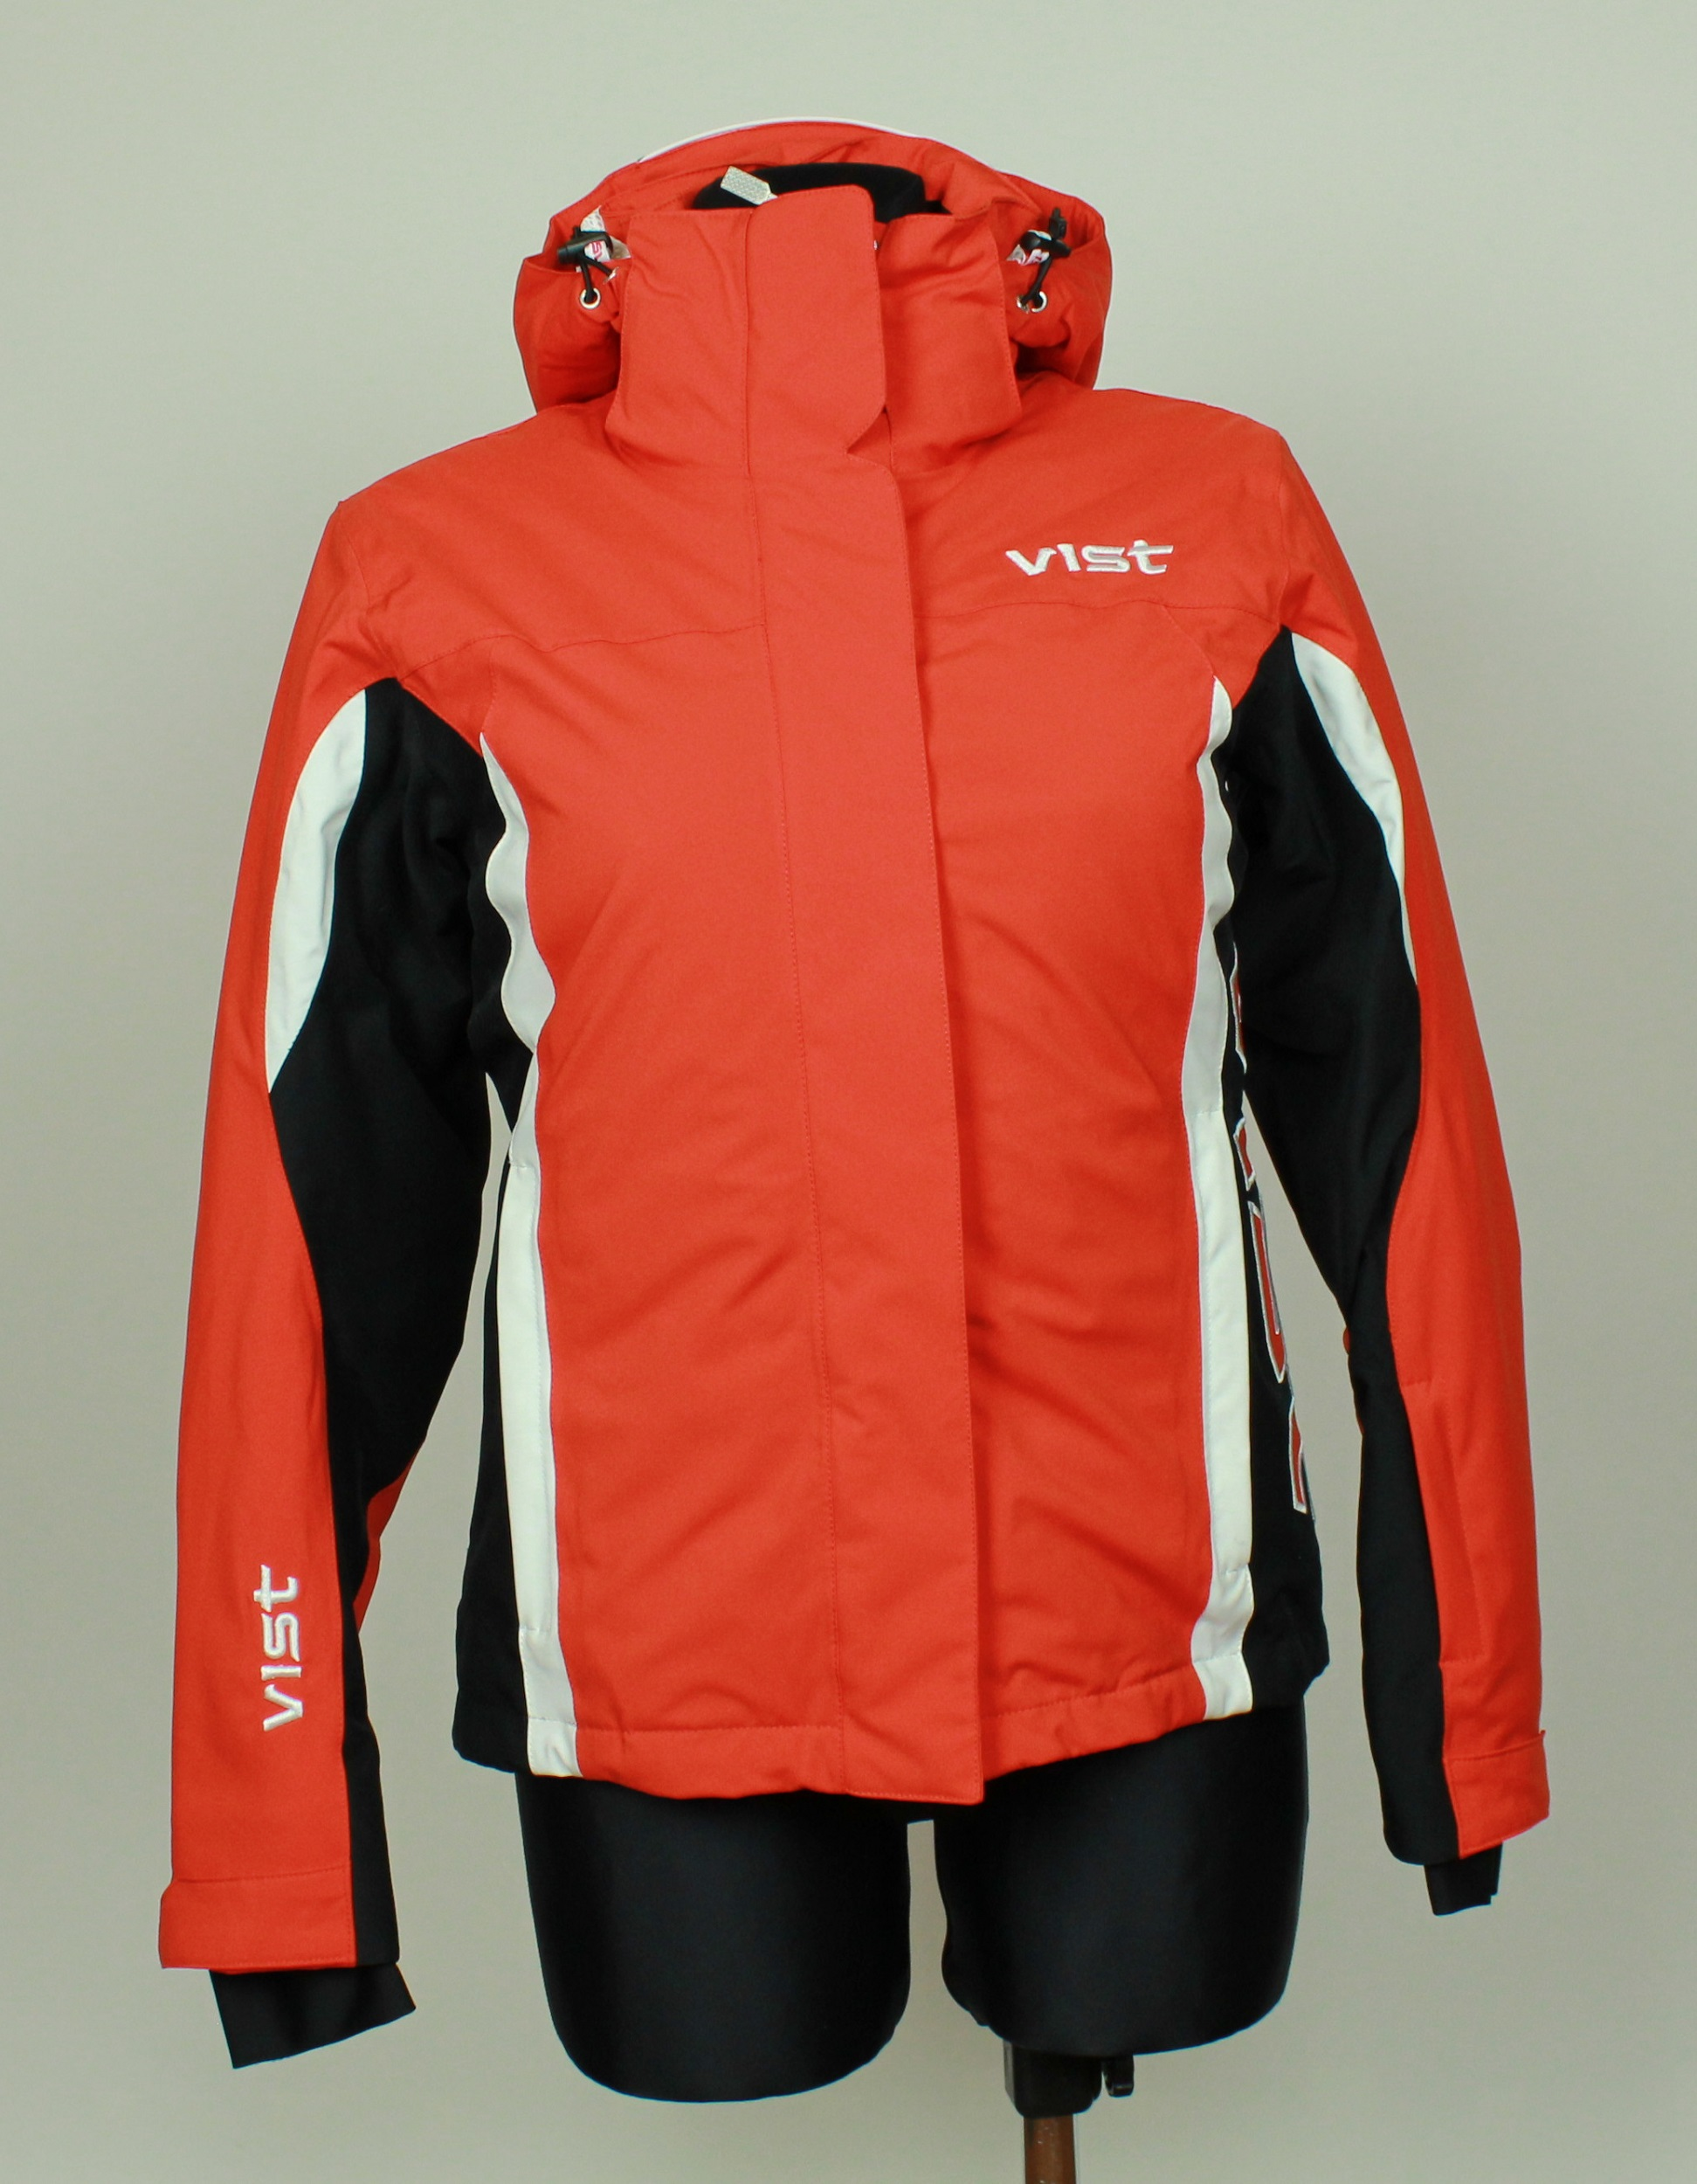 Vist Grand Risa Ski Jacket